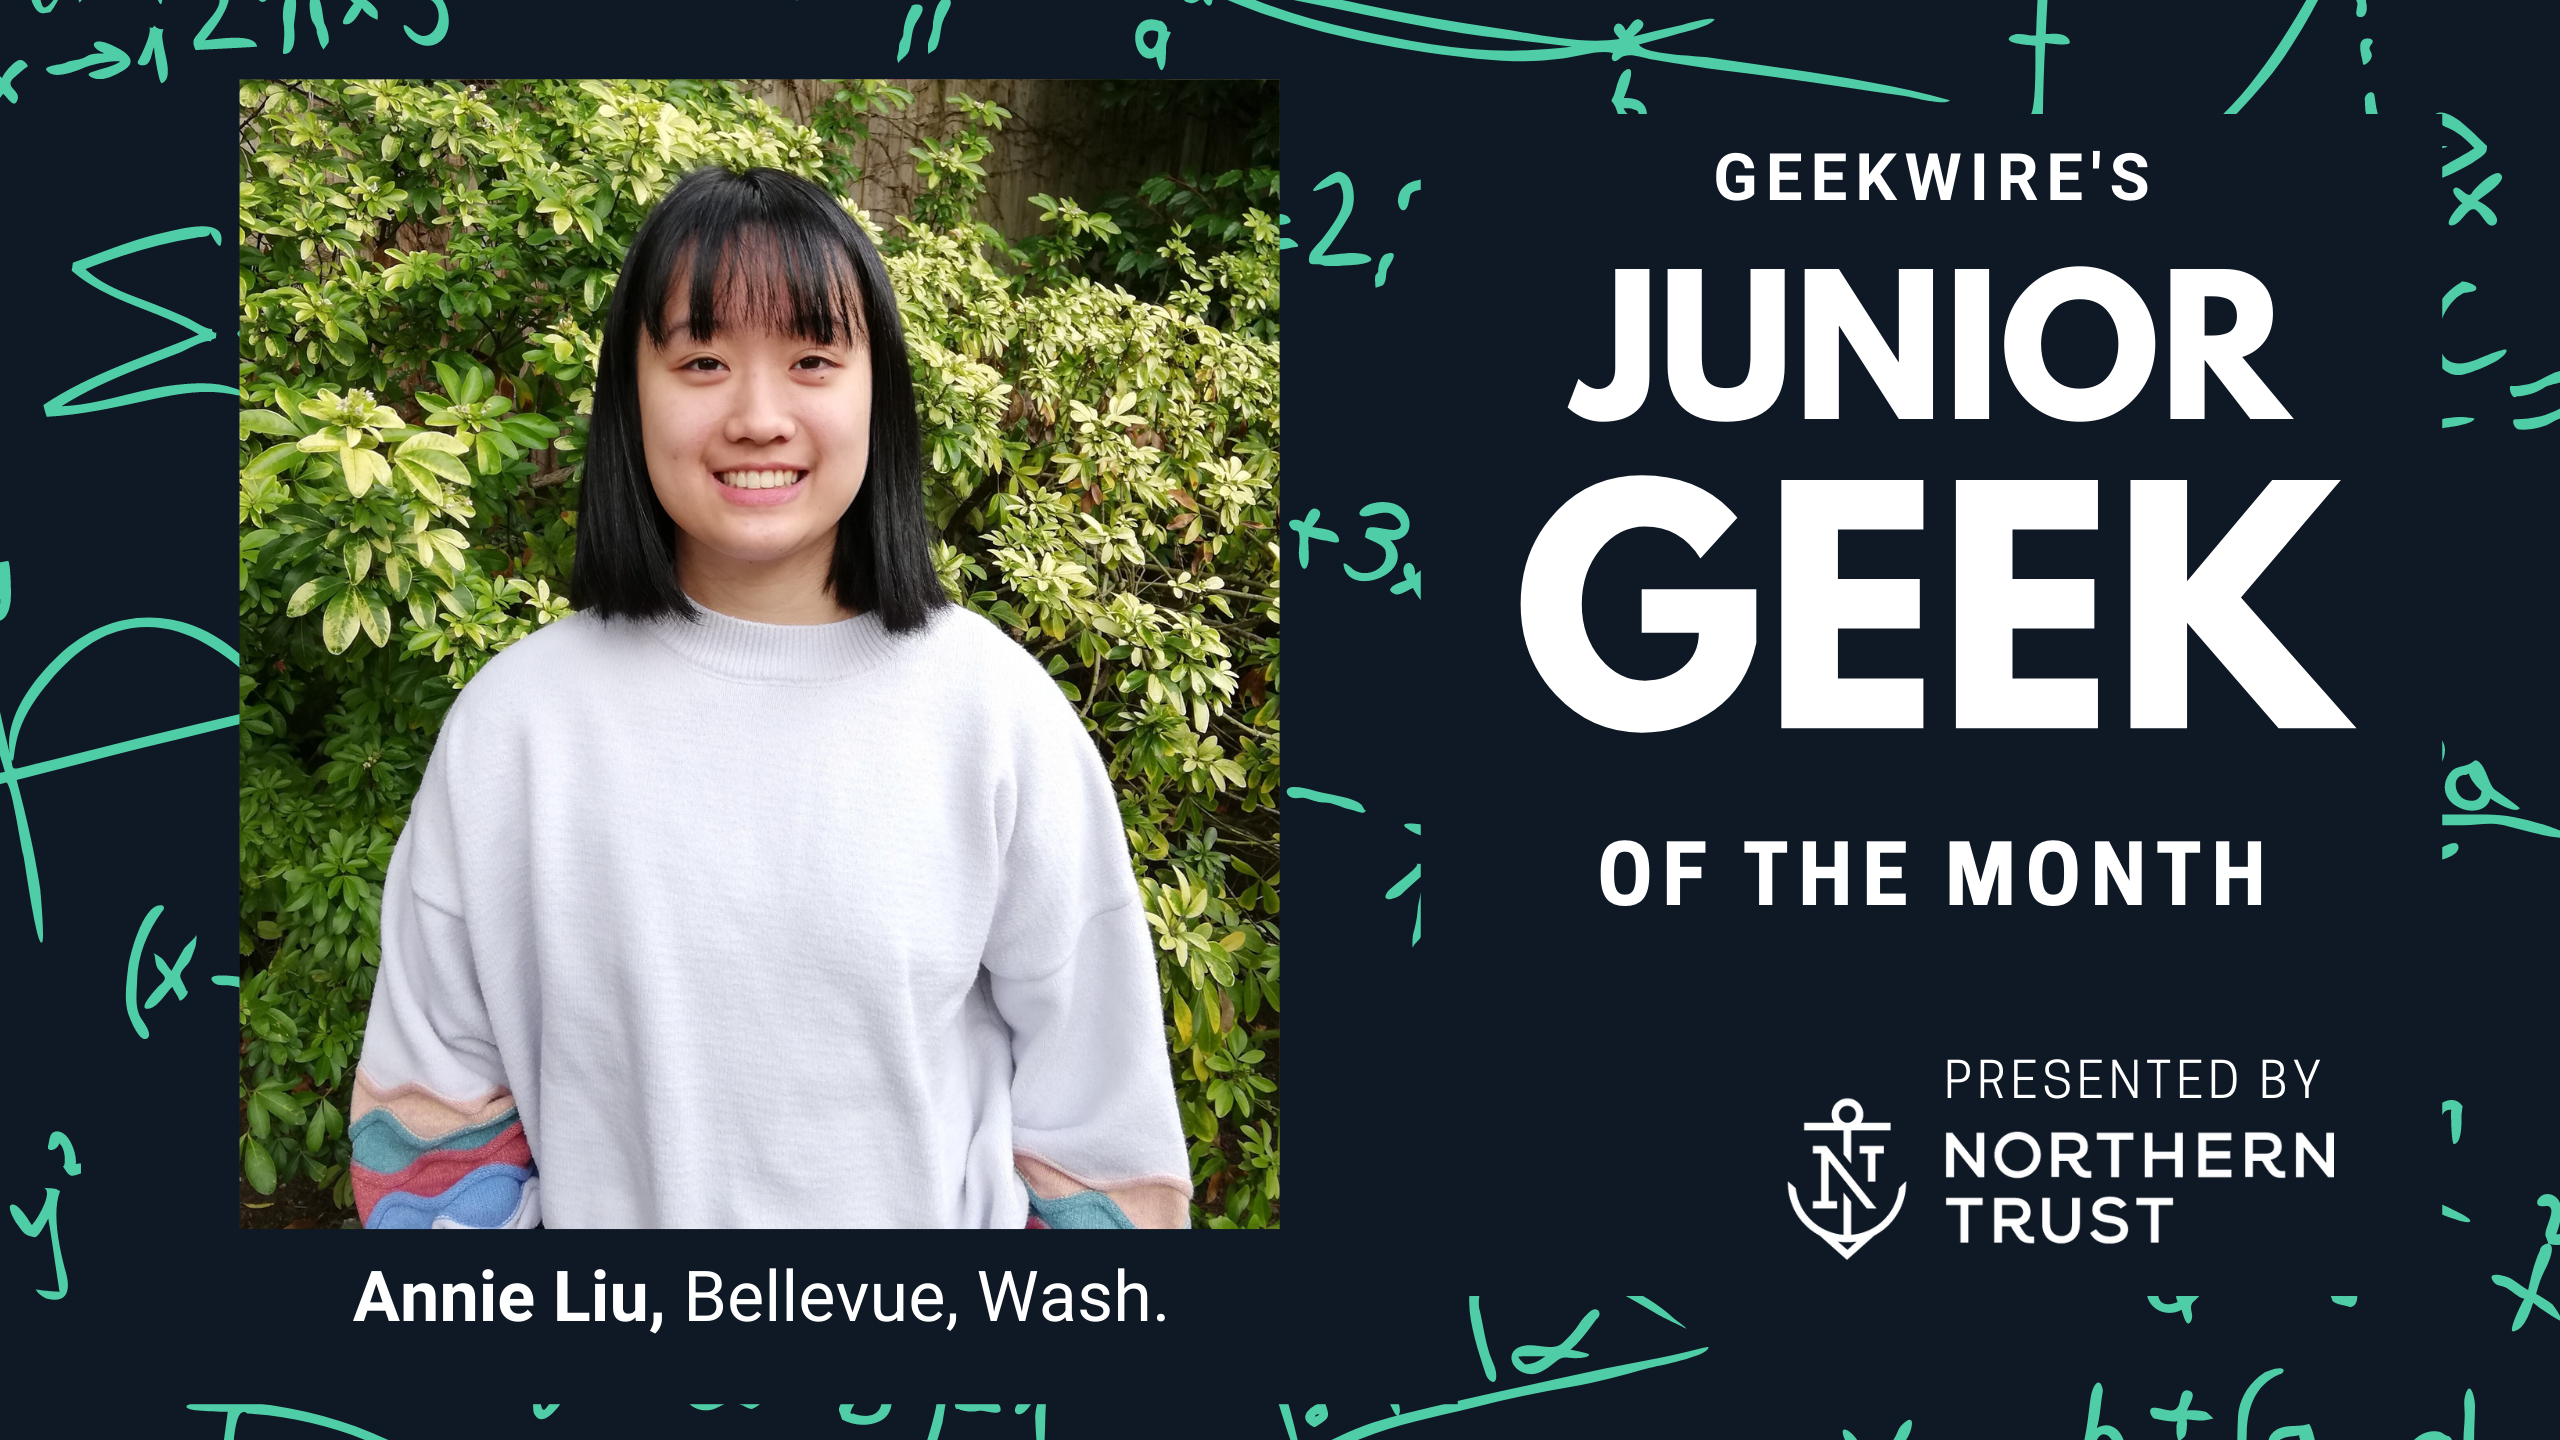 Junior Geek of the Month: Annie Liu's love for code and communication translates to bright tech future